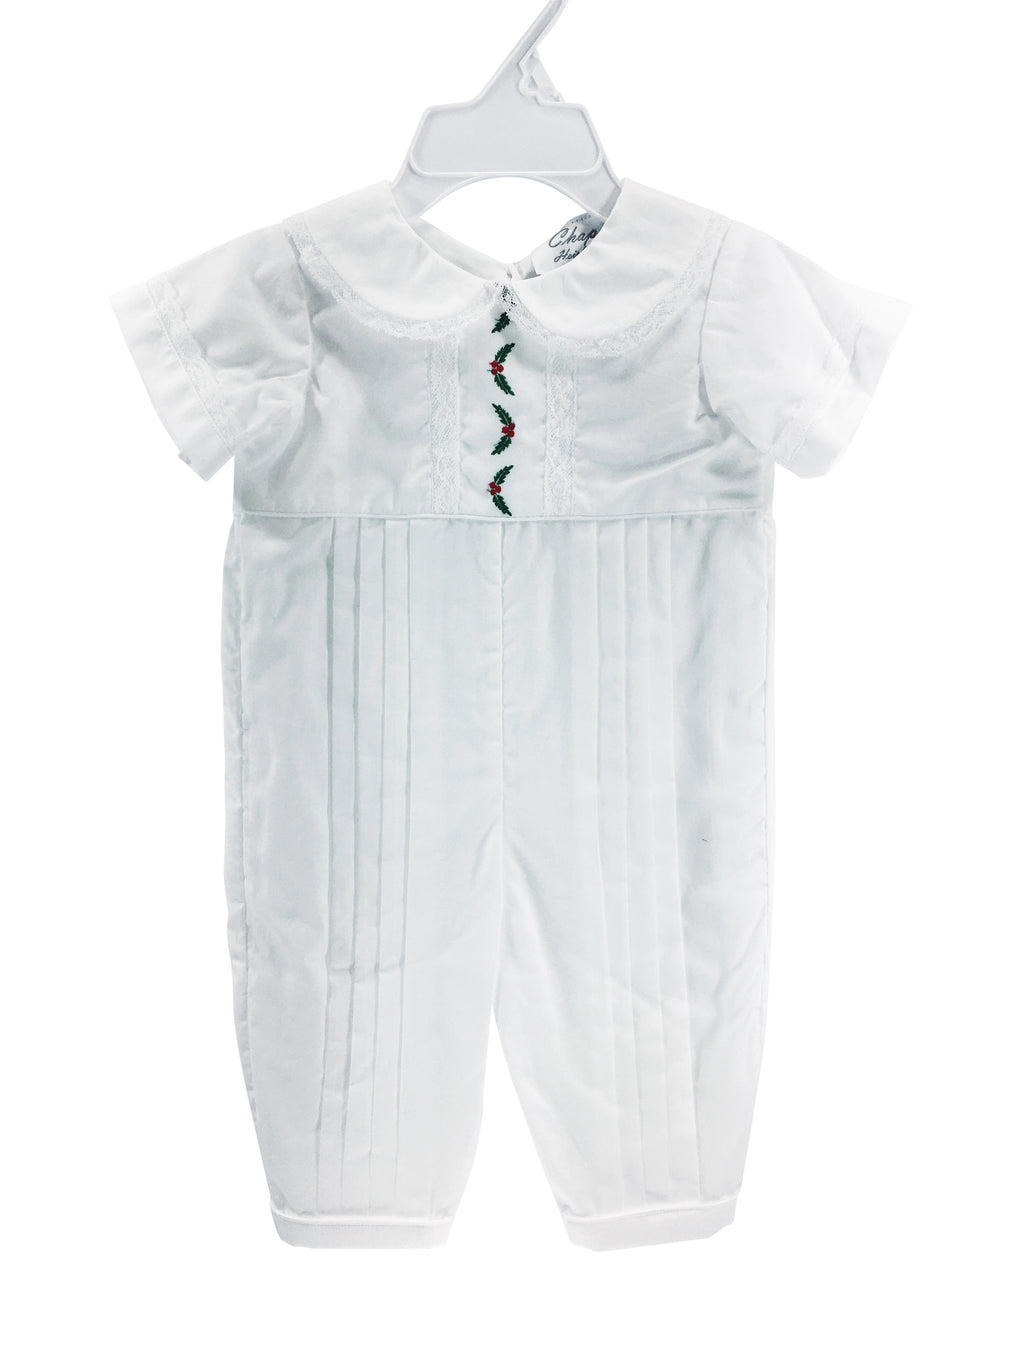 Sutton Jumpsuit White with Holly - Born Childrens Boutique